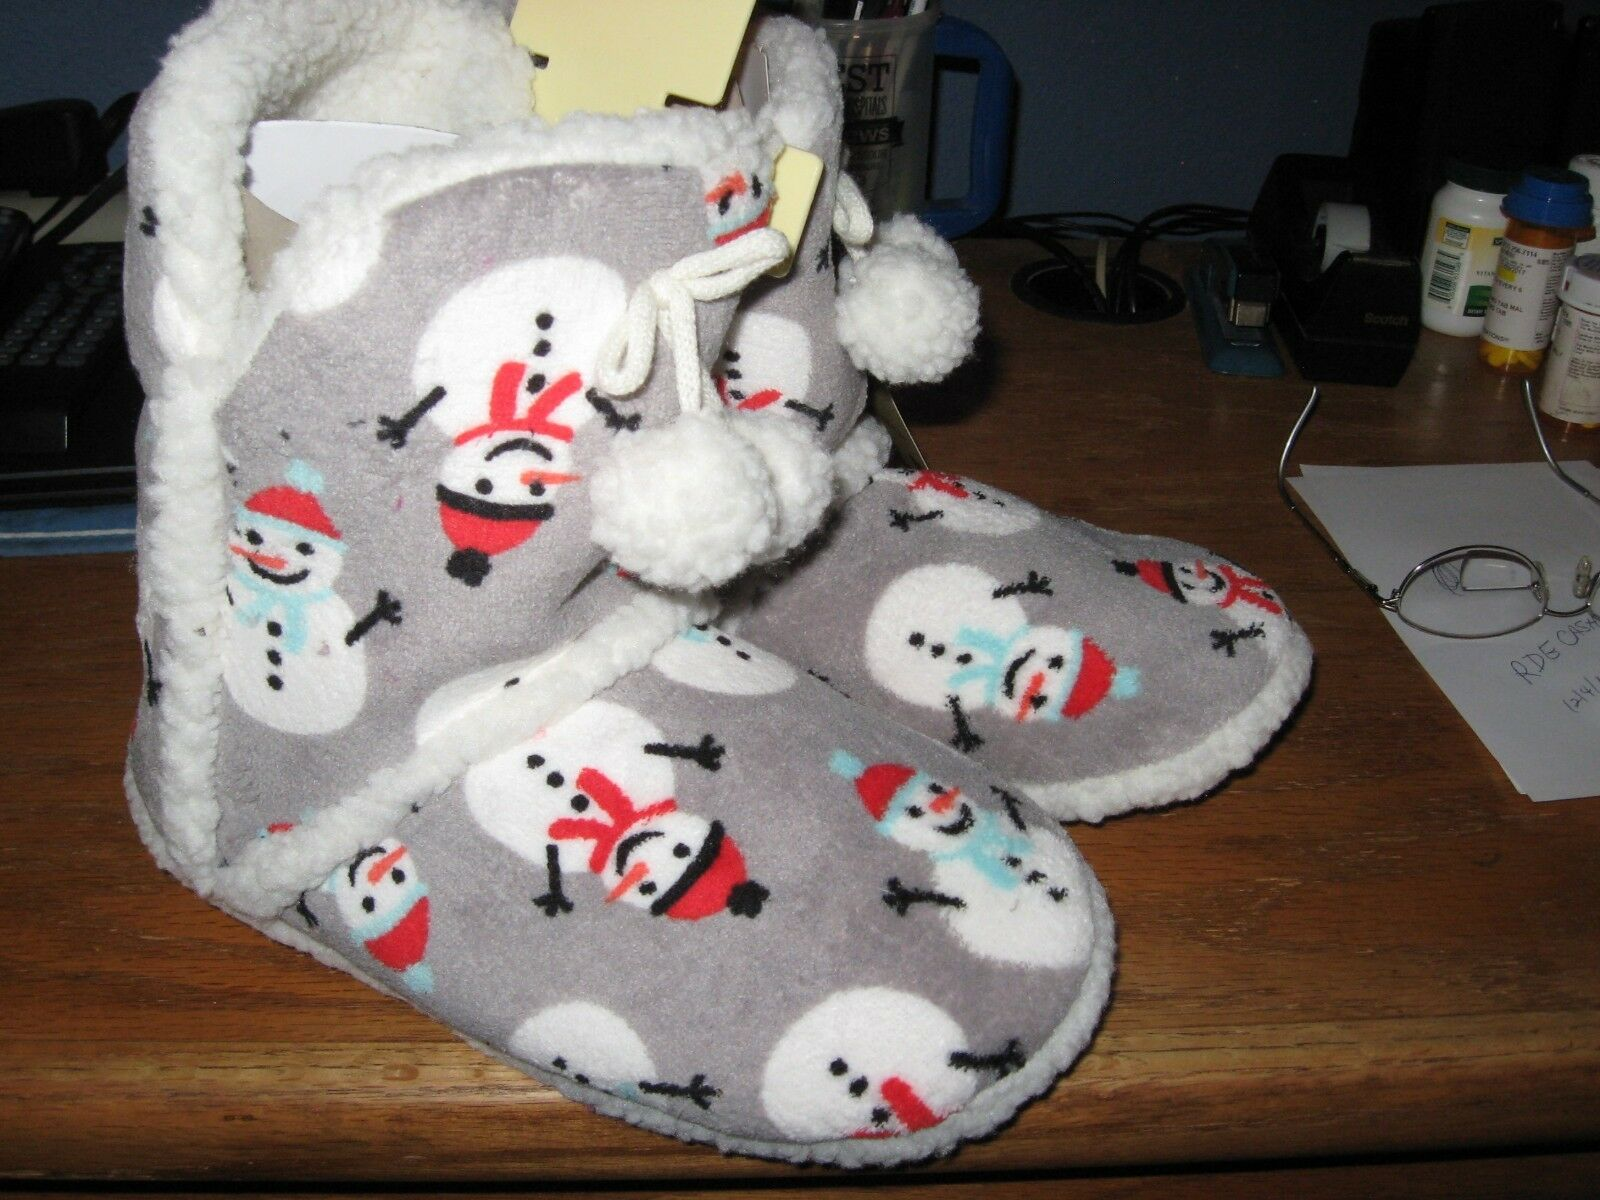 WOMENS SLIPPERS SIZE LARGE 9 10 BOOTIES HOLIDAY SNOWMEN CHRISTMAS NEW WITH TAGS